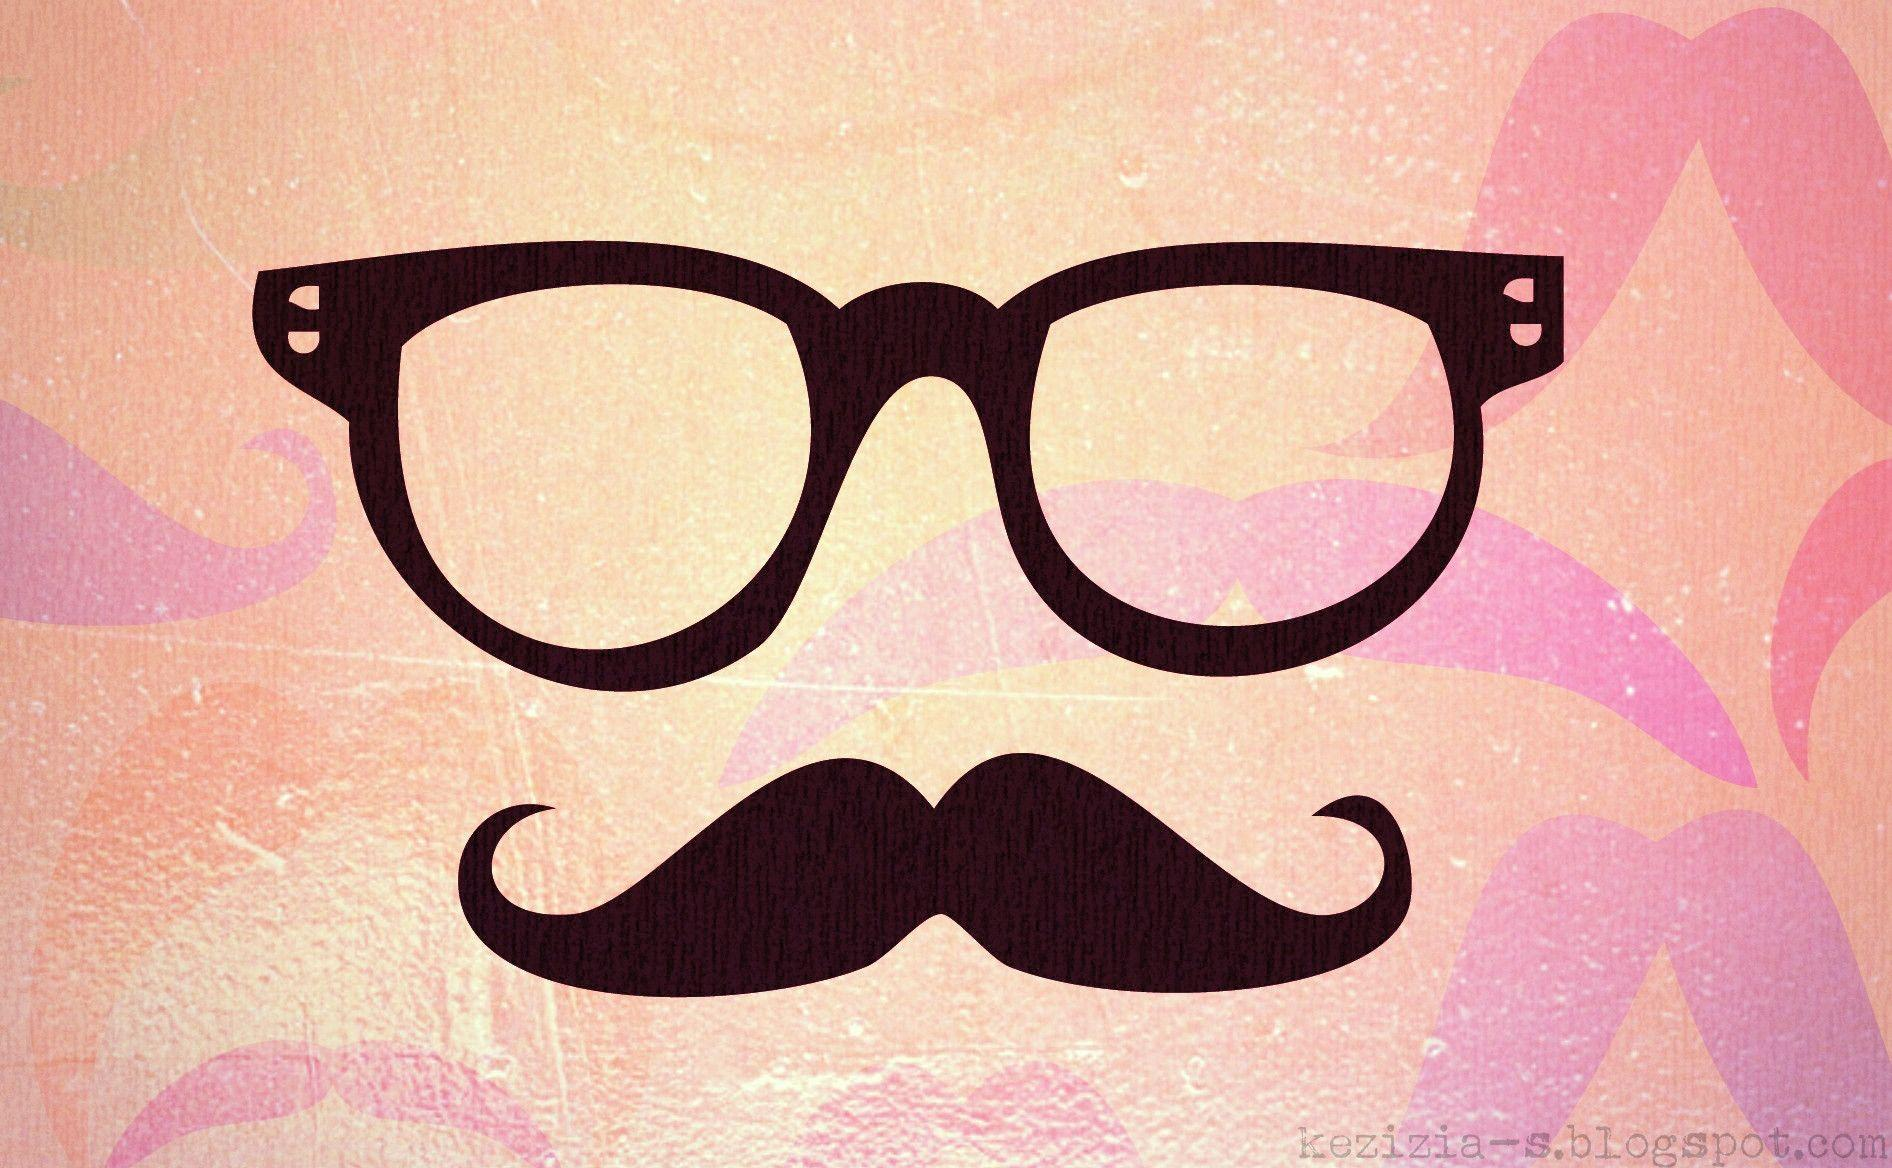 47 Moustache Gallery Of Wallpapers